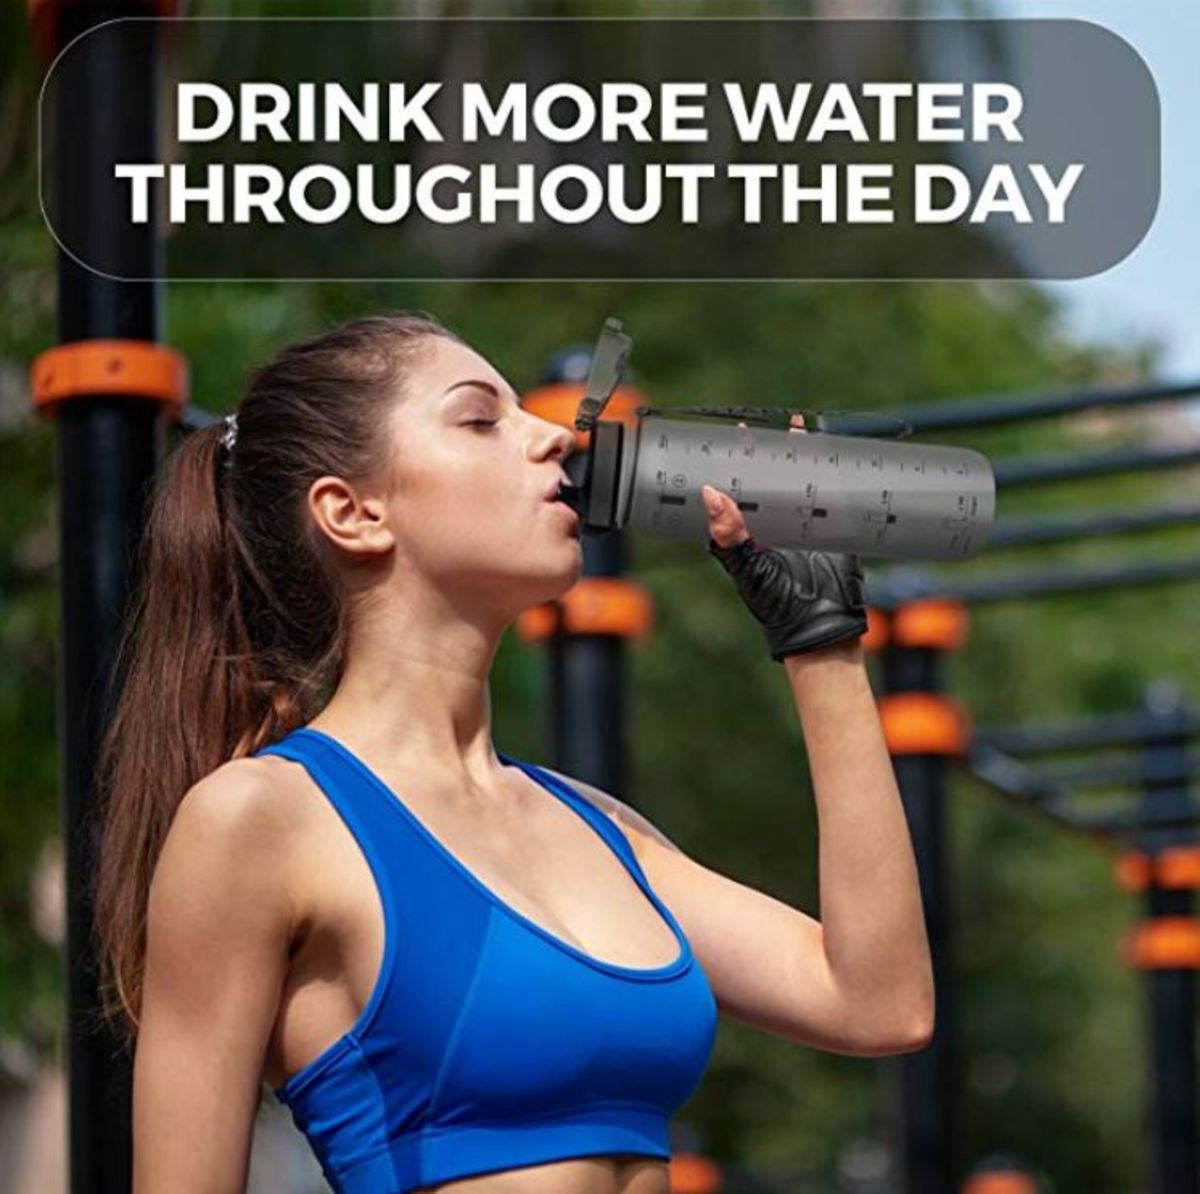 A Fun and Easy Solution to Drink More Water